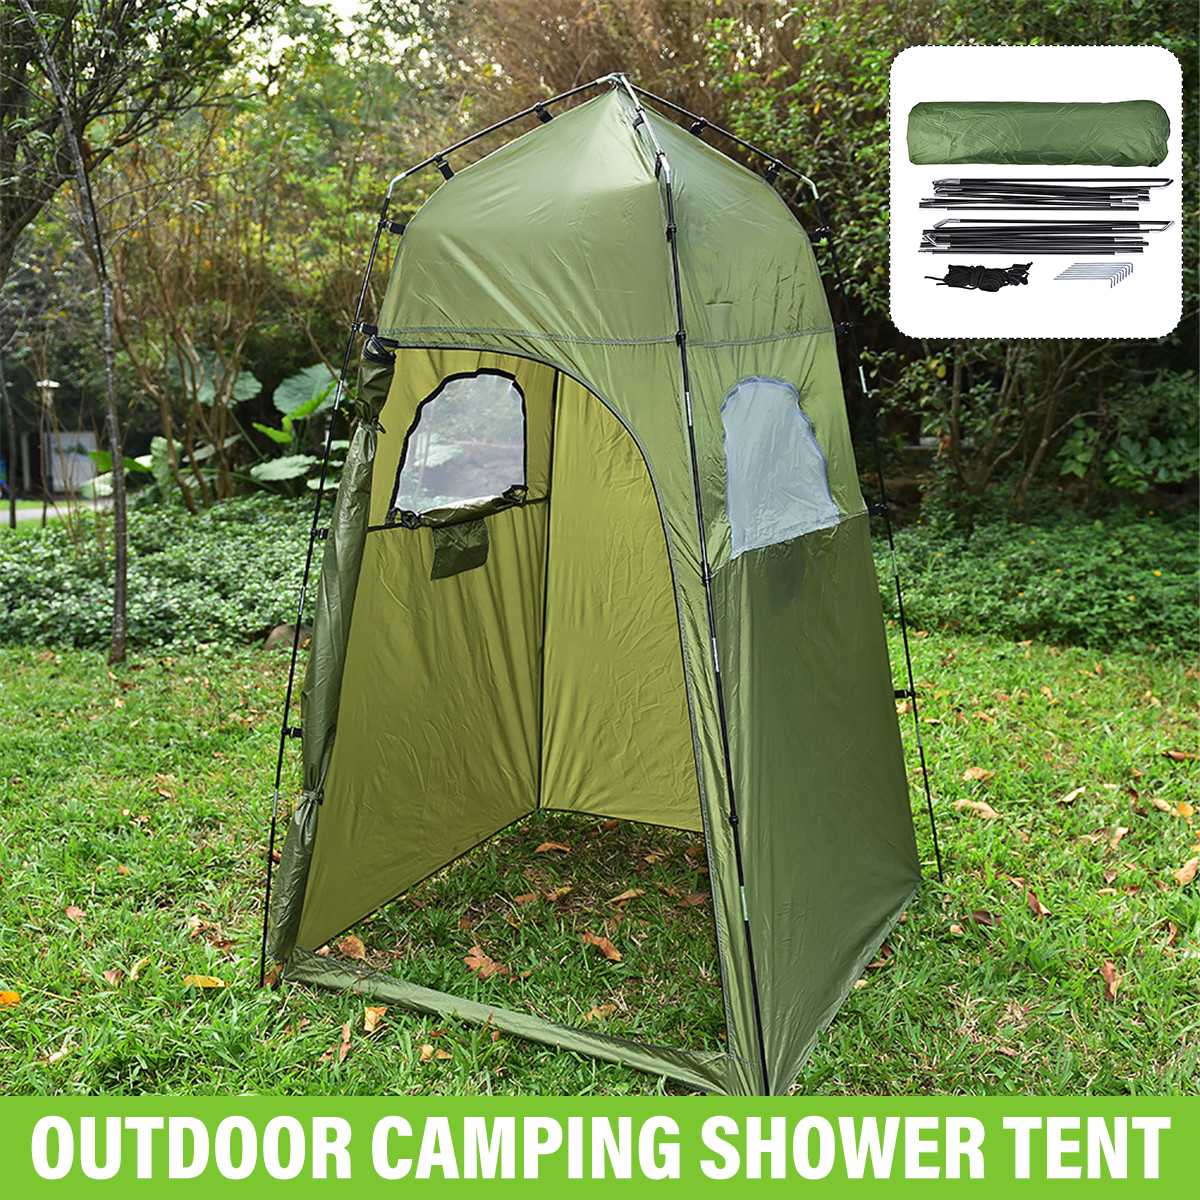 Pop Up Toilet Tent Shower Tent Fishing Shelter for Camping Beach Outdoor Sun Shelter Camping Toilet Tent Portable Privacy Changing Tent with Carrying Bag